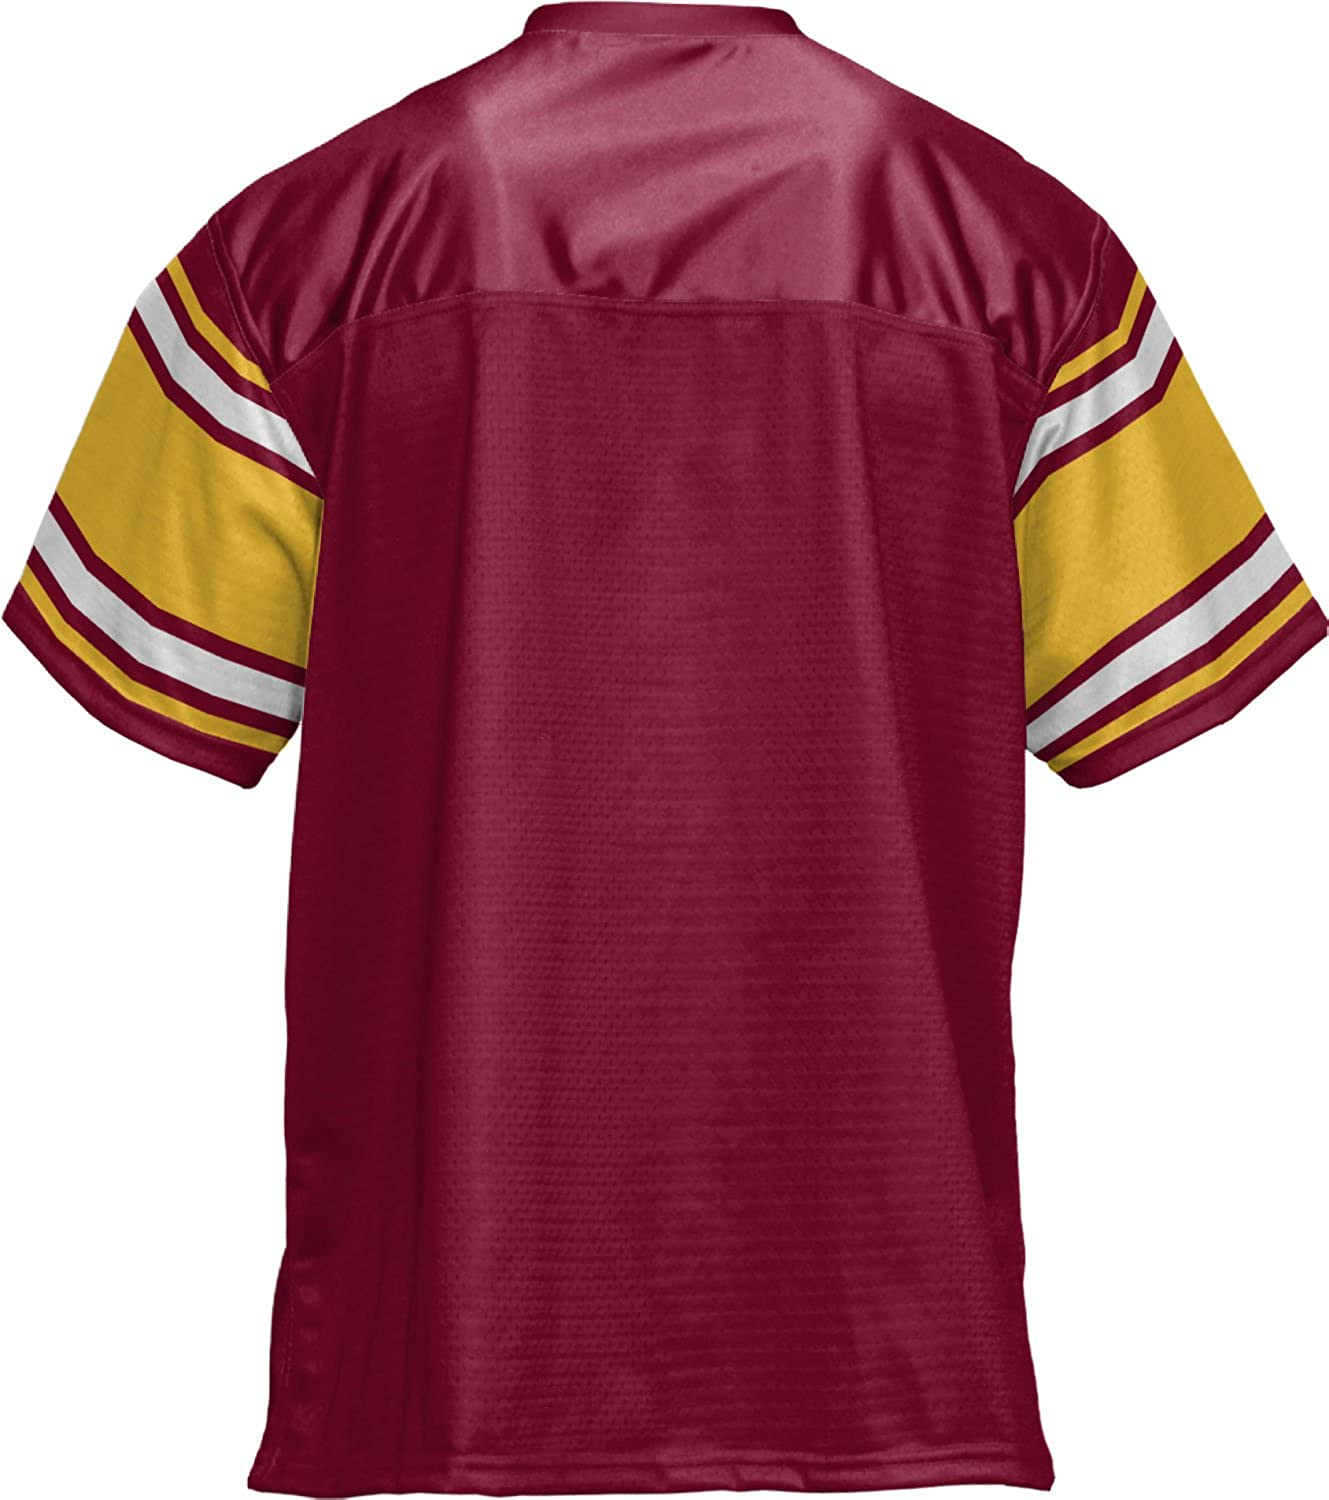 new styles b5c10 90db2 Amazon.com: ProSphere Iowa State University Men's Football ...